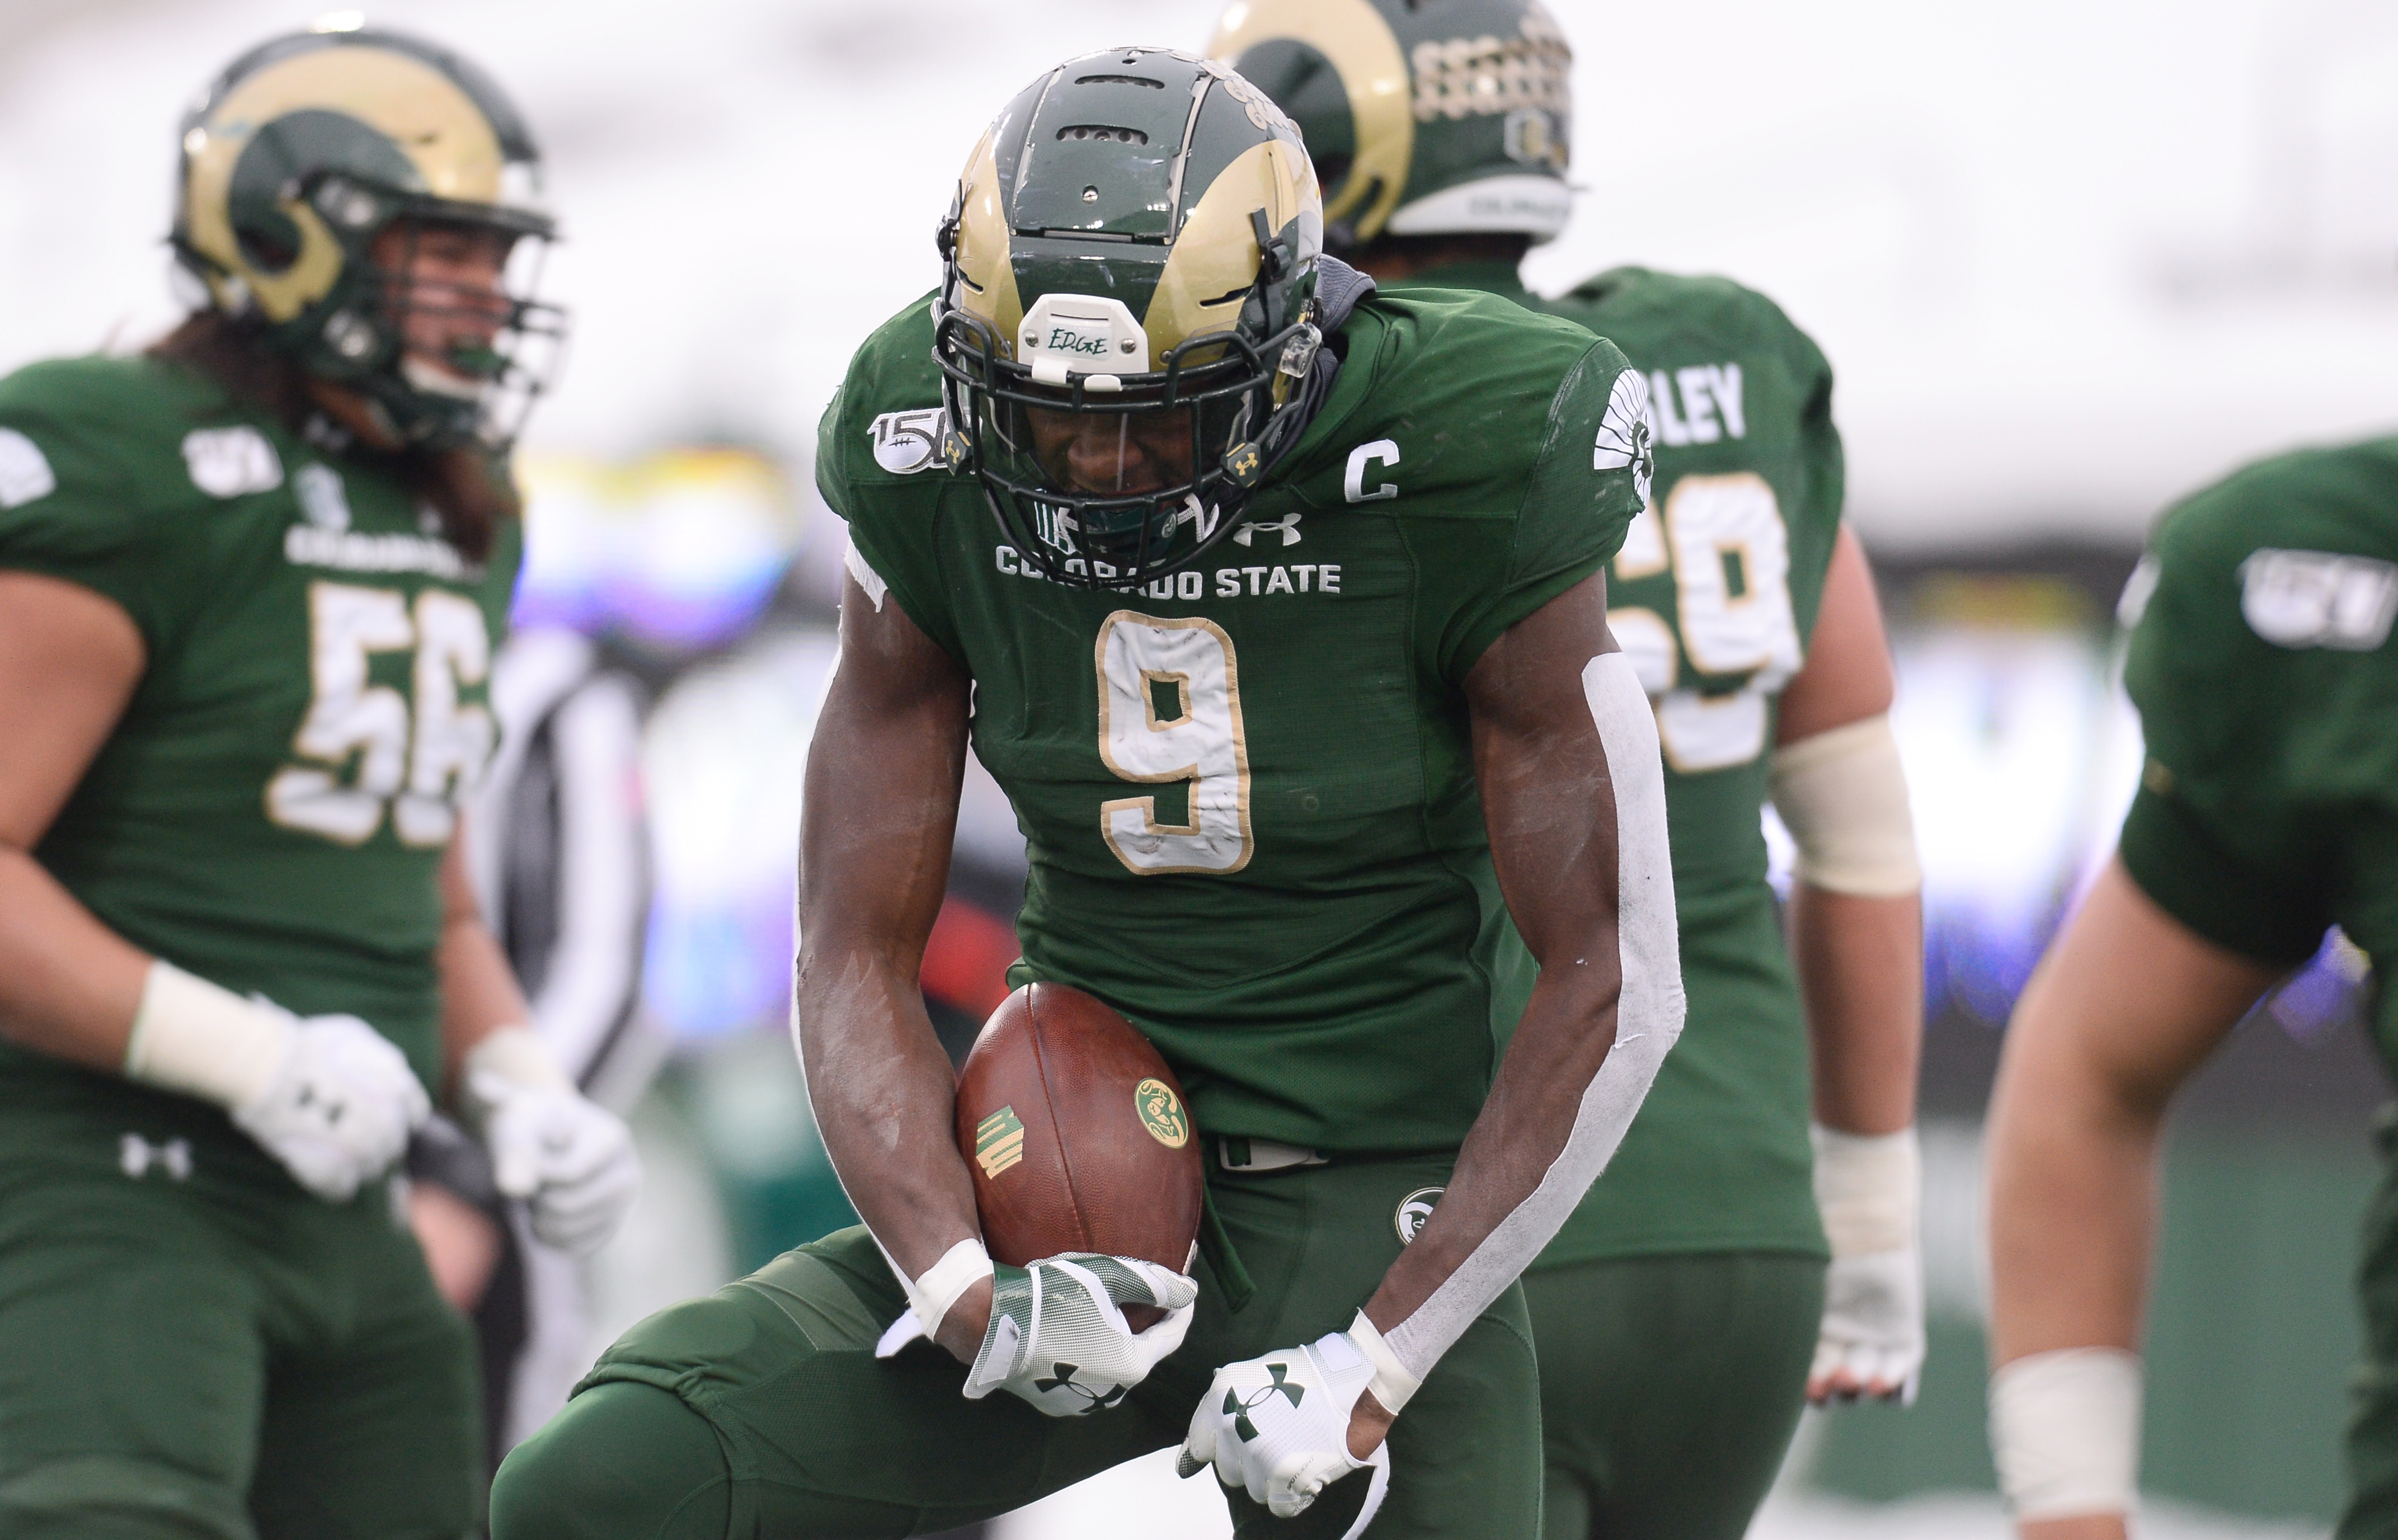 Colorado State wide receiver Warren Jackson celebrates his touchdown reception in the second quarter against Boise State.